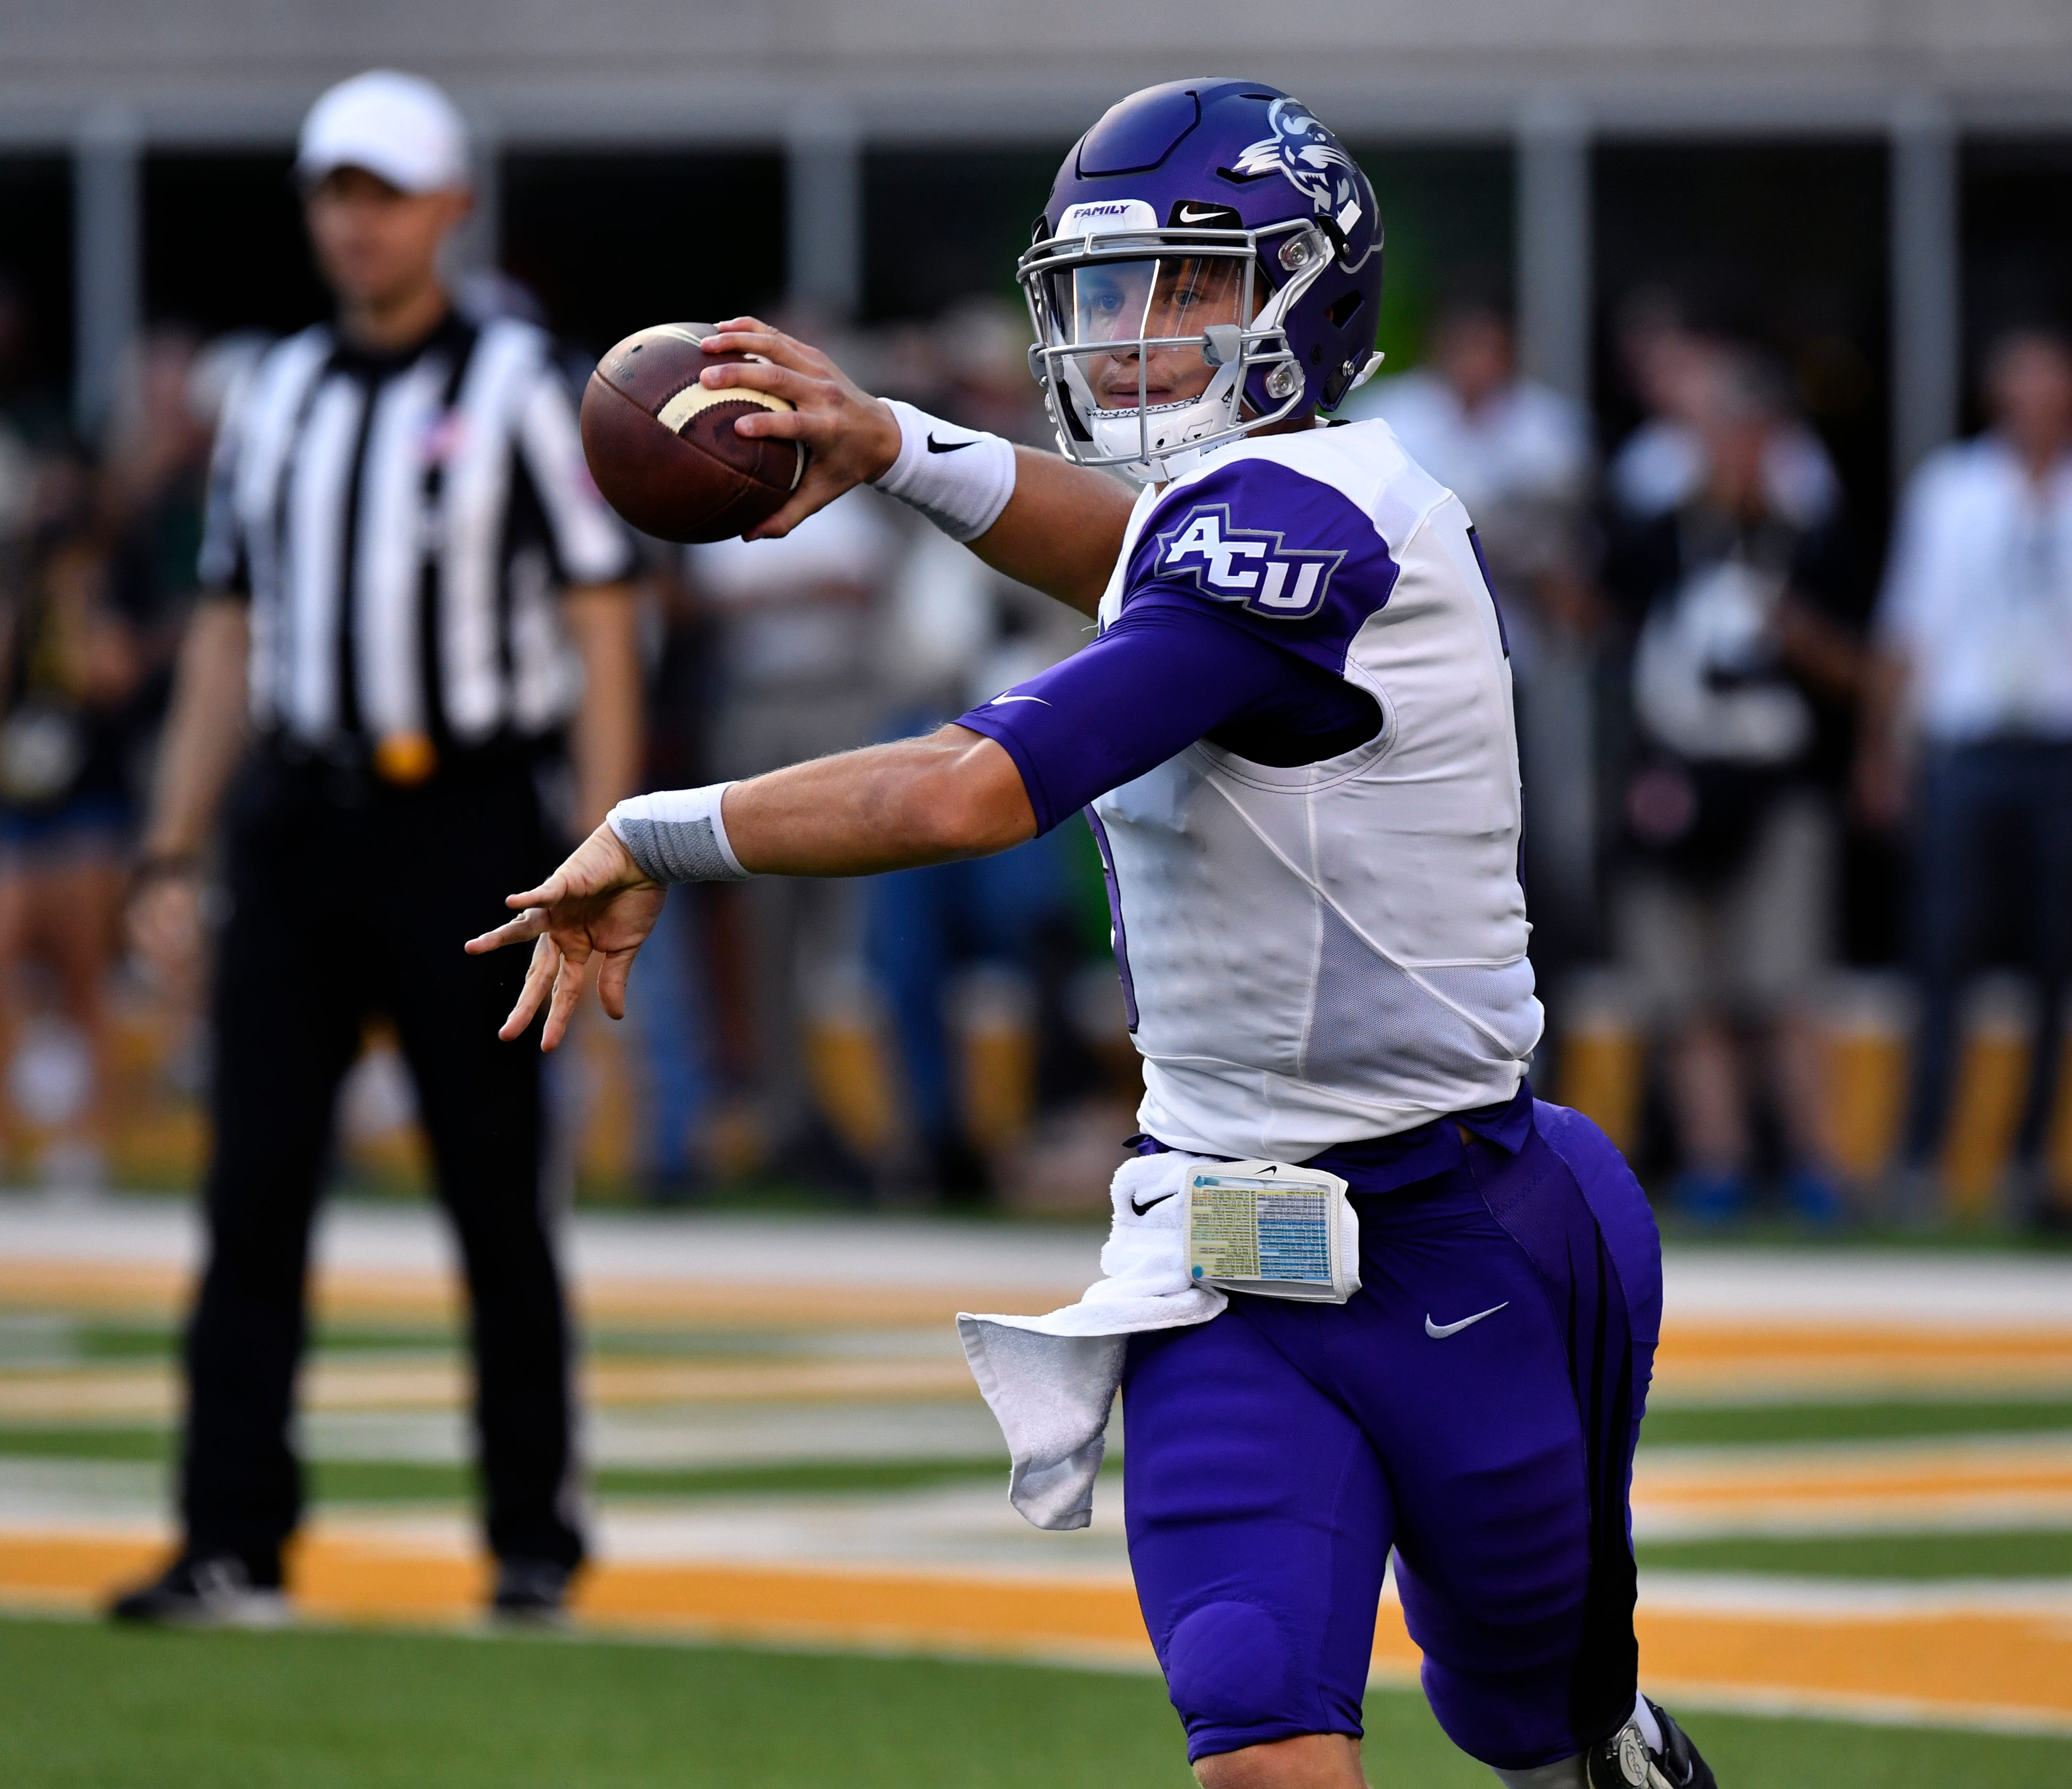 ACU quarterback Luke Anthony throws a pass during the Wildcats' game against Baylor on Saturday in Waco. Baylor won the game 55-27 in the first meeting between the two teams.